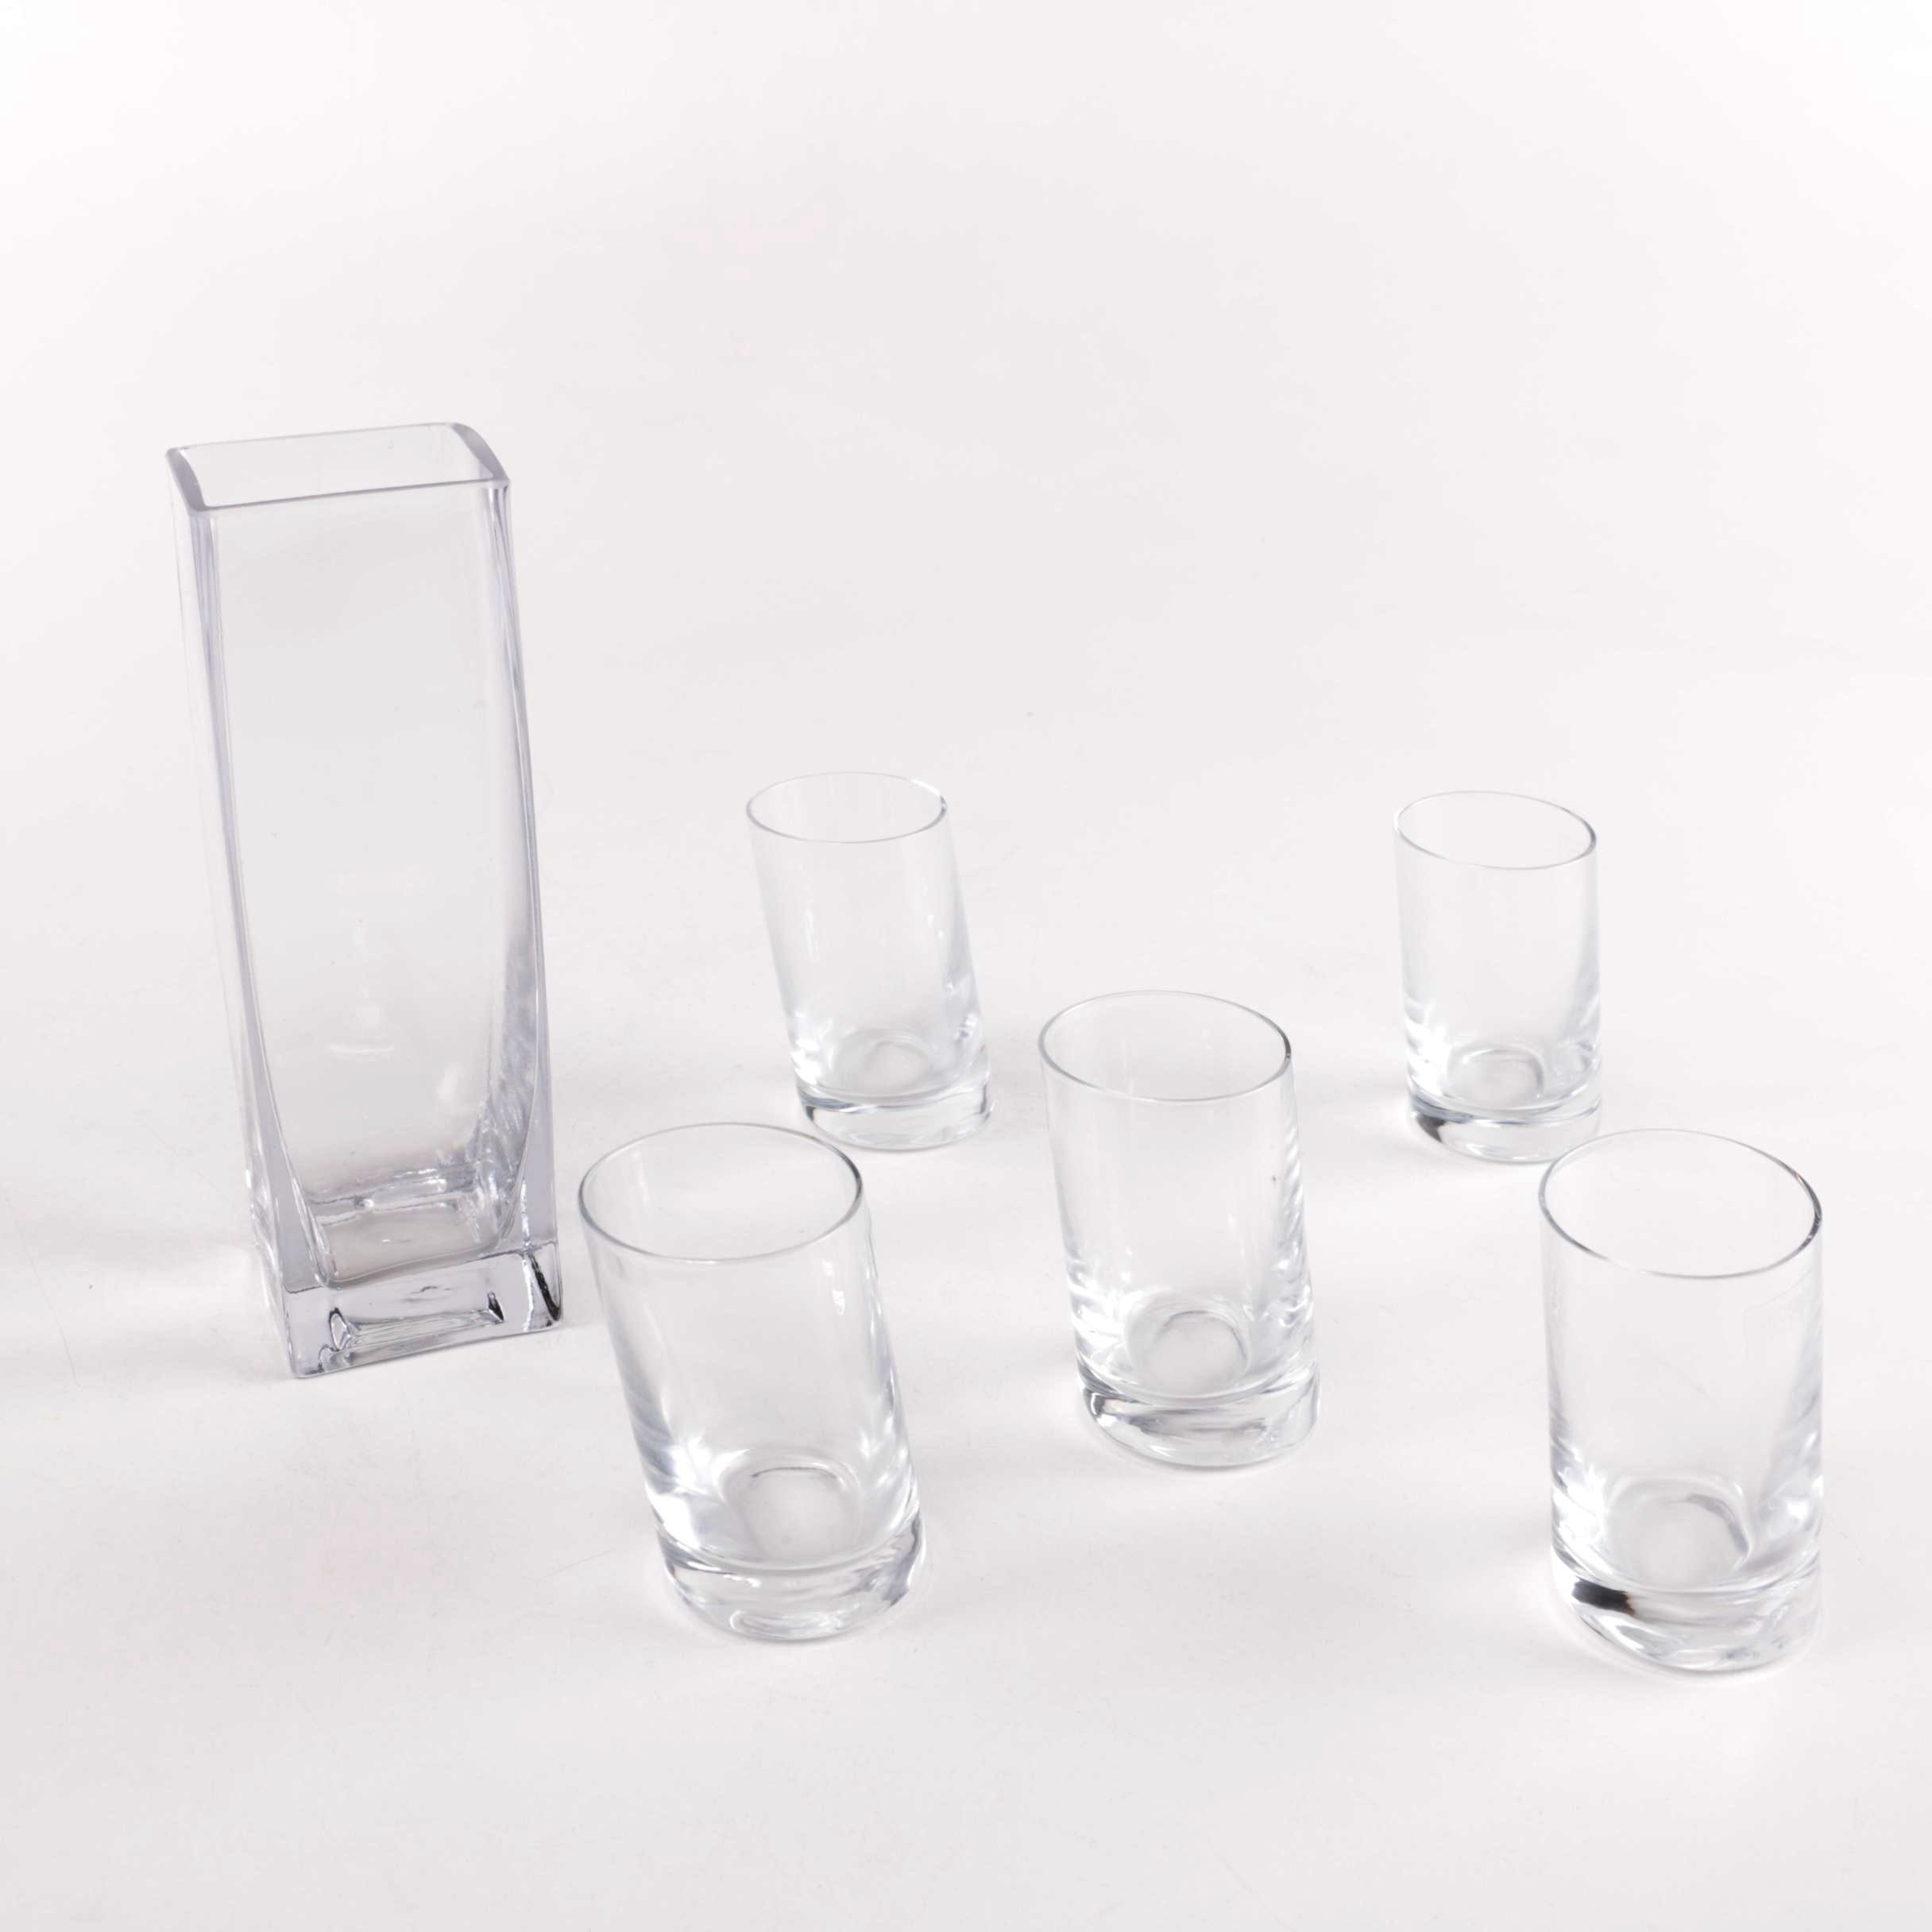 Selection of Glassware Including Krosno